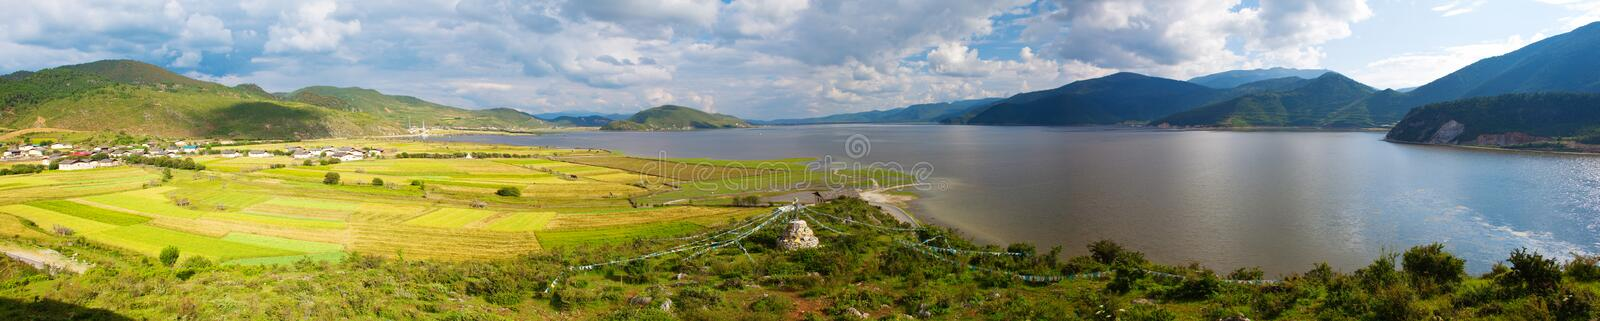 The NAPA sea in SHANGRI-LA. The panoramic view of NAPA sea in SHANGRI-LA, Yunan, China. Cloudy but sunshine on the field royalty free stock photo